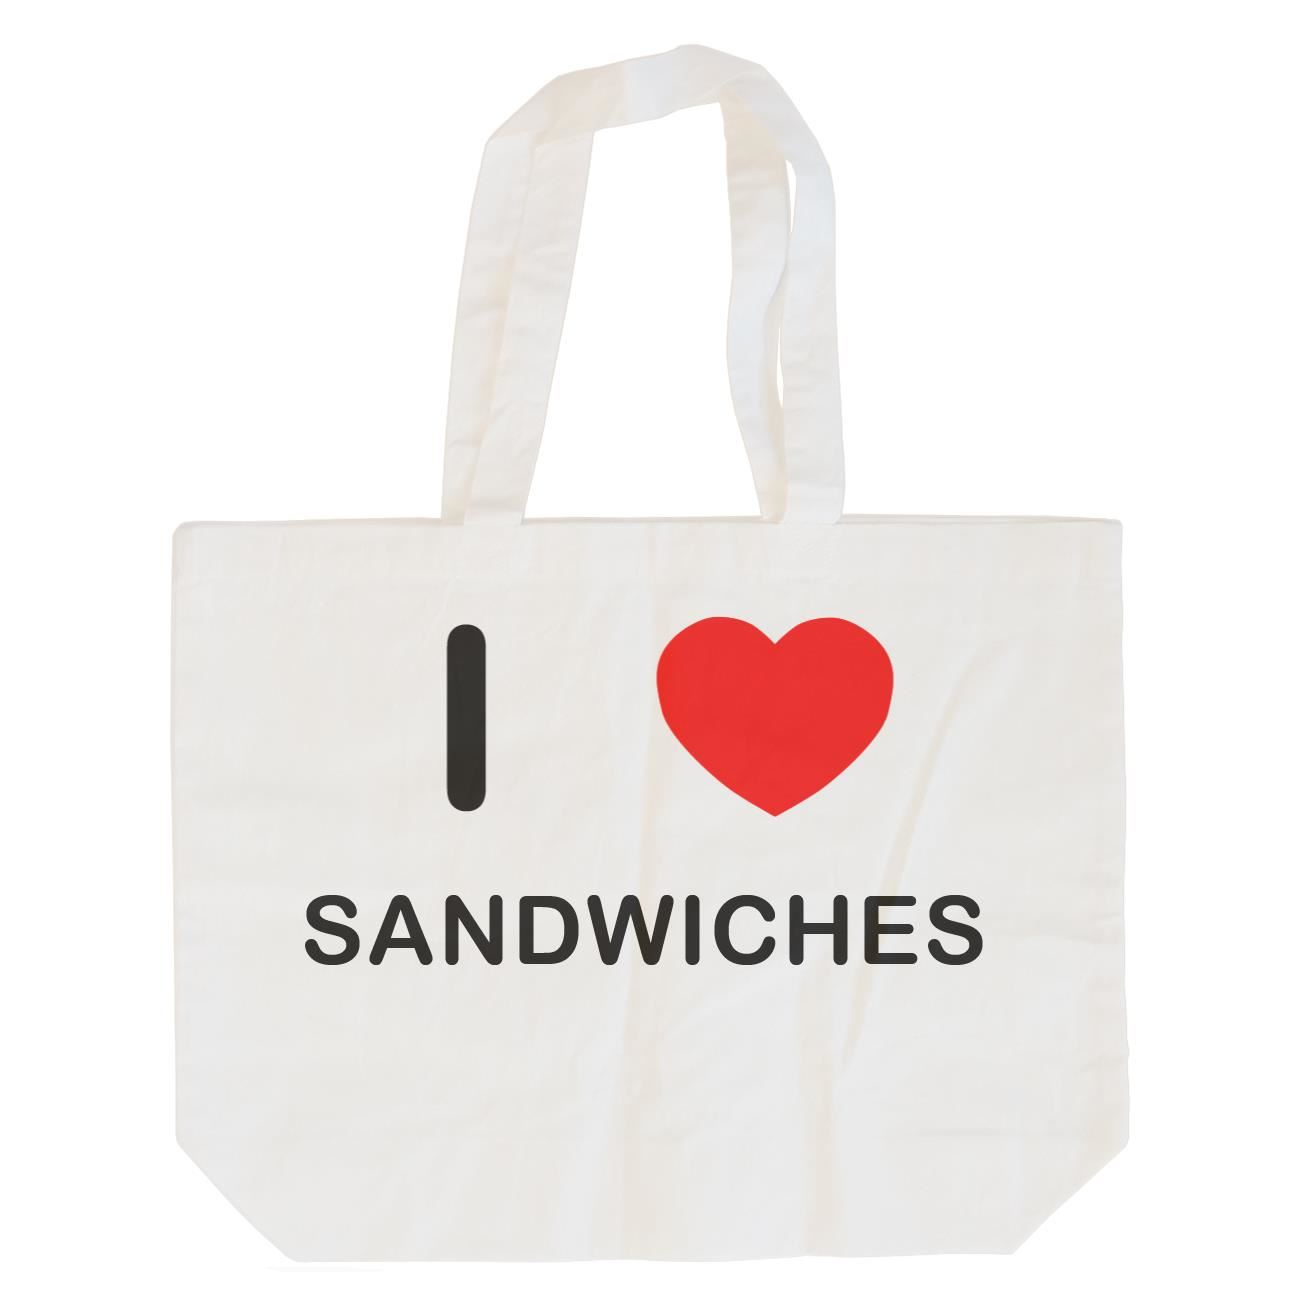 I Love Sandwiches - Cotton Bag | Size choice Tote, Shopper or Sling